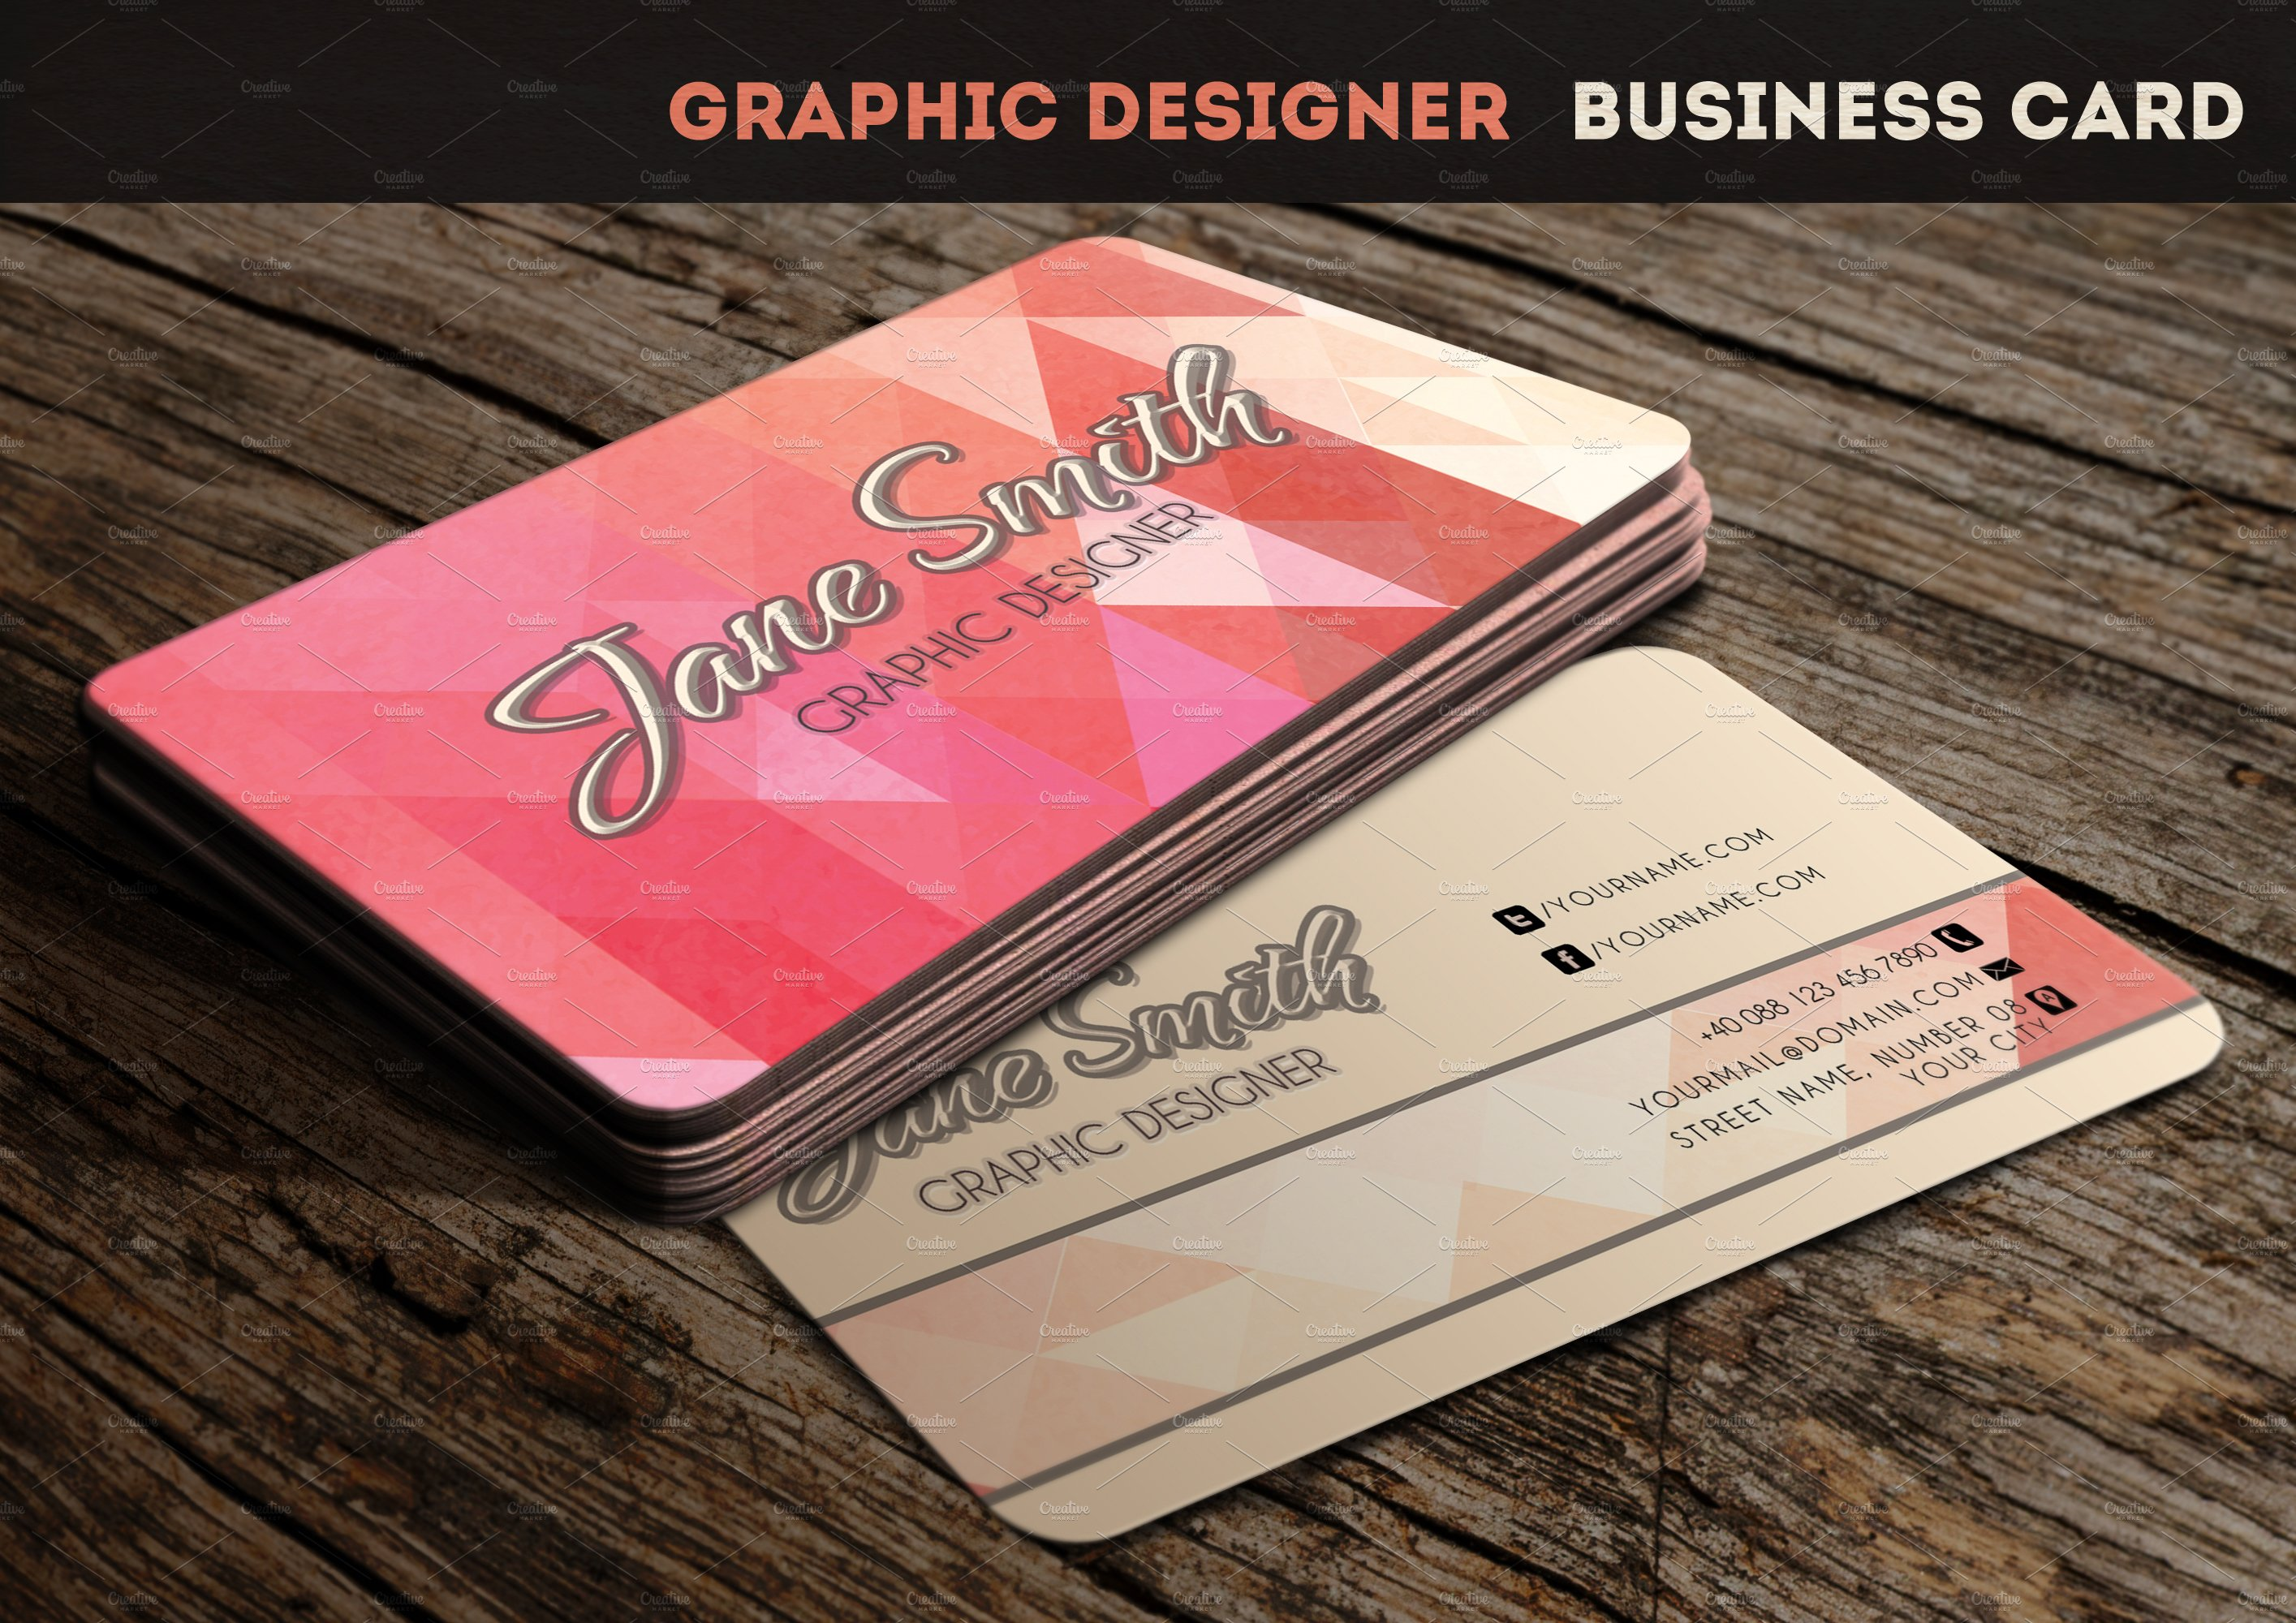 Graphic Designer Business Card ~ Business Card Templates ~ Creative ...